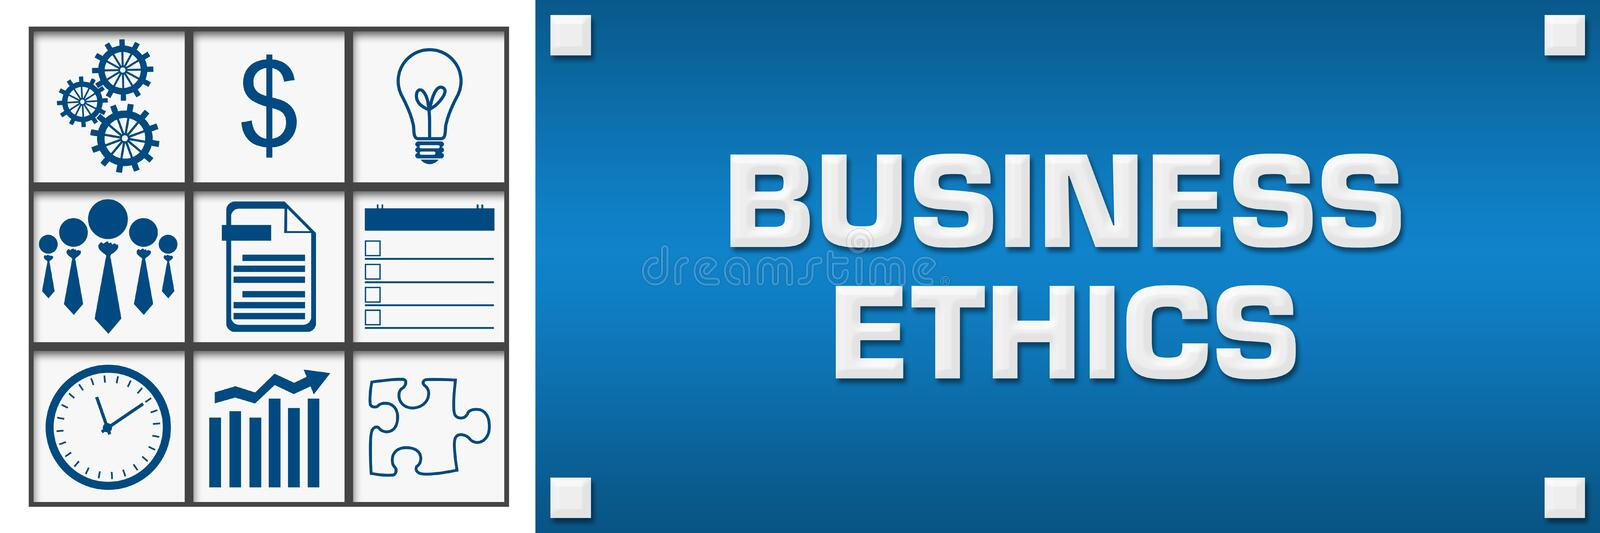 Business Ethics Business Symbols Grid Left. Business ethics concept image with text and related symbols royalty free illustration